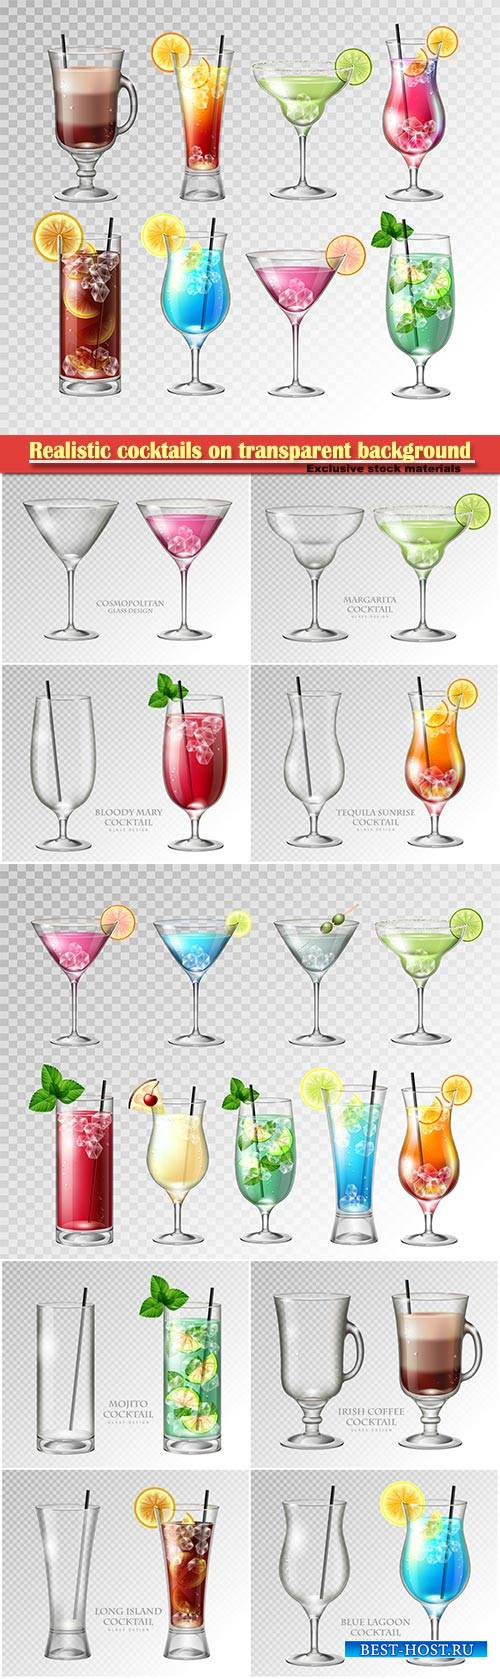 Realistic cocktails on transparent background vector illustration